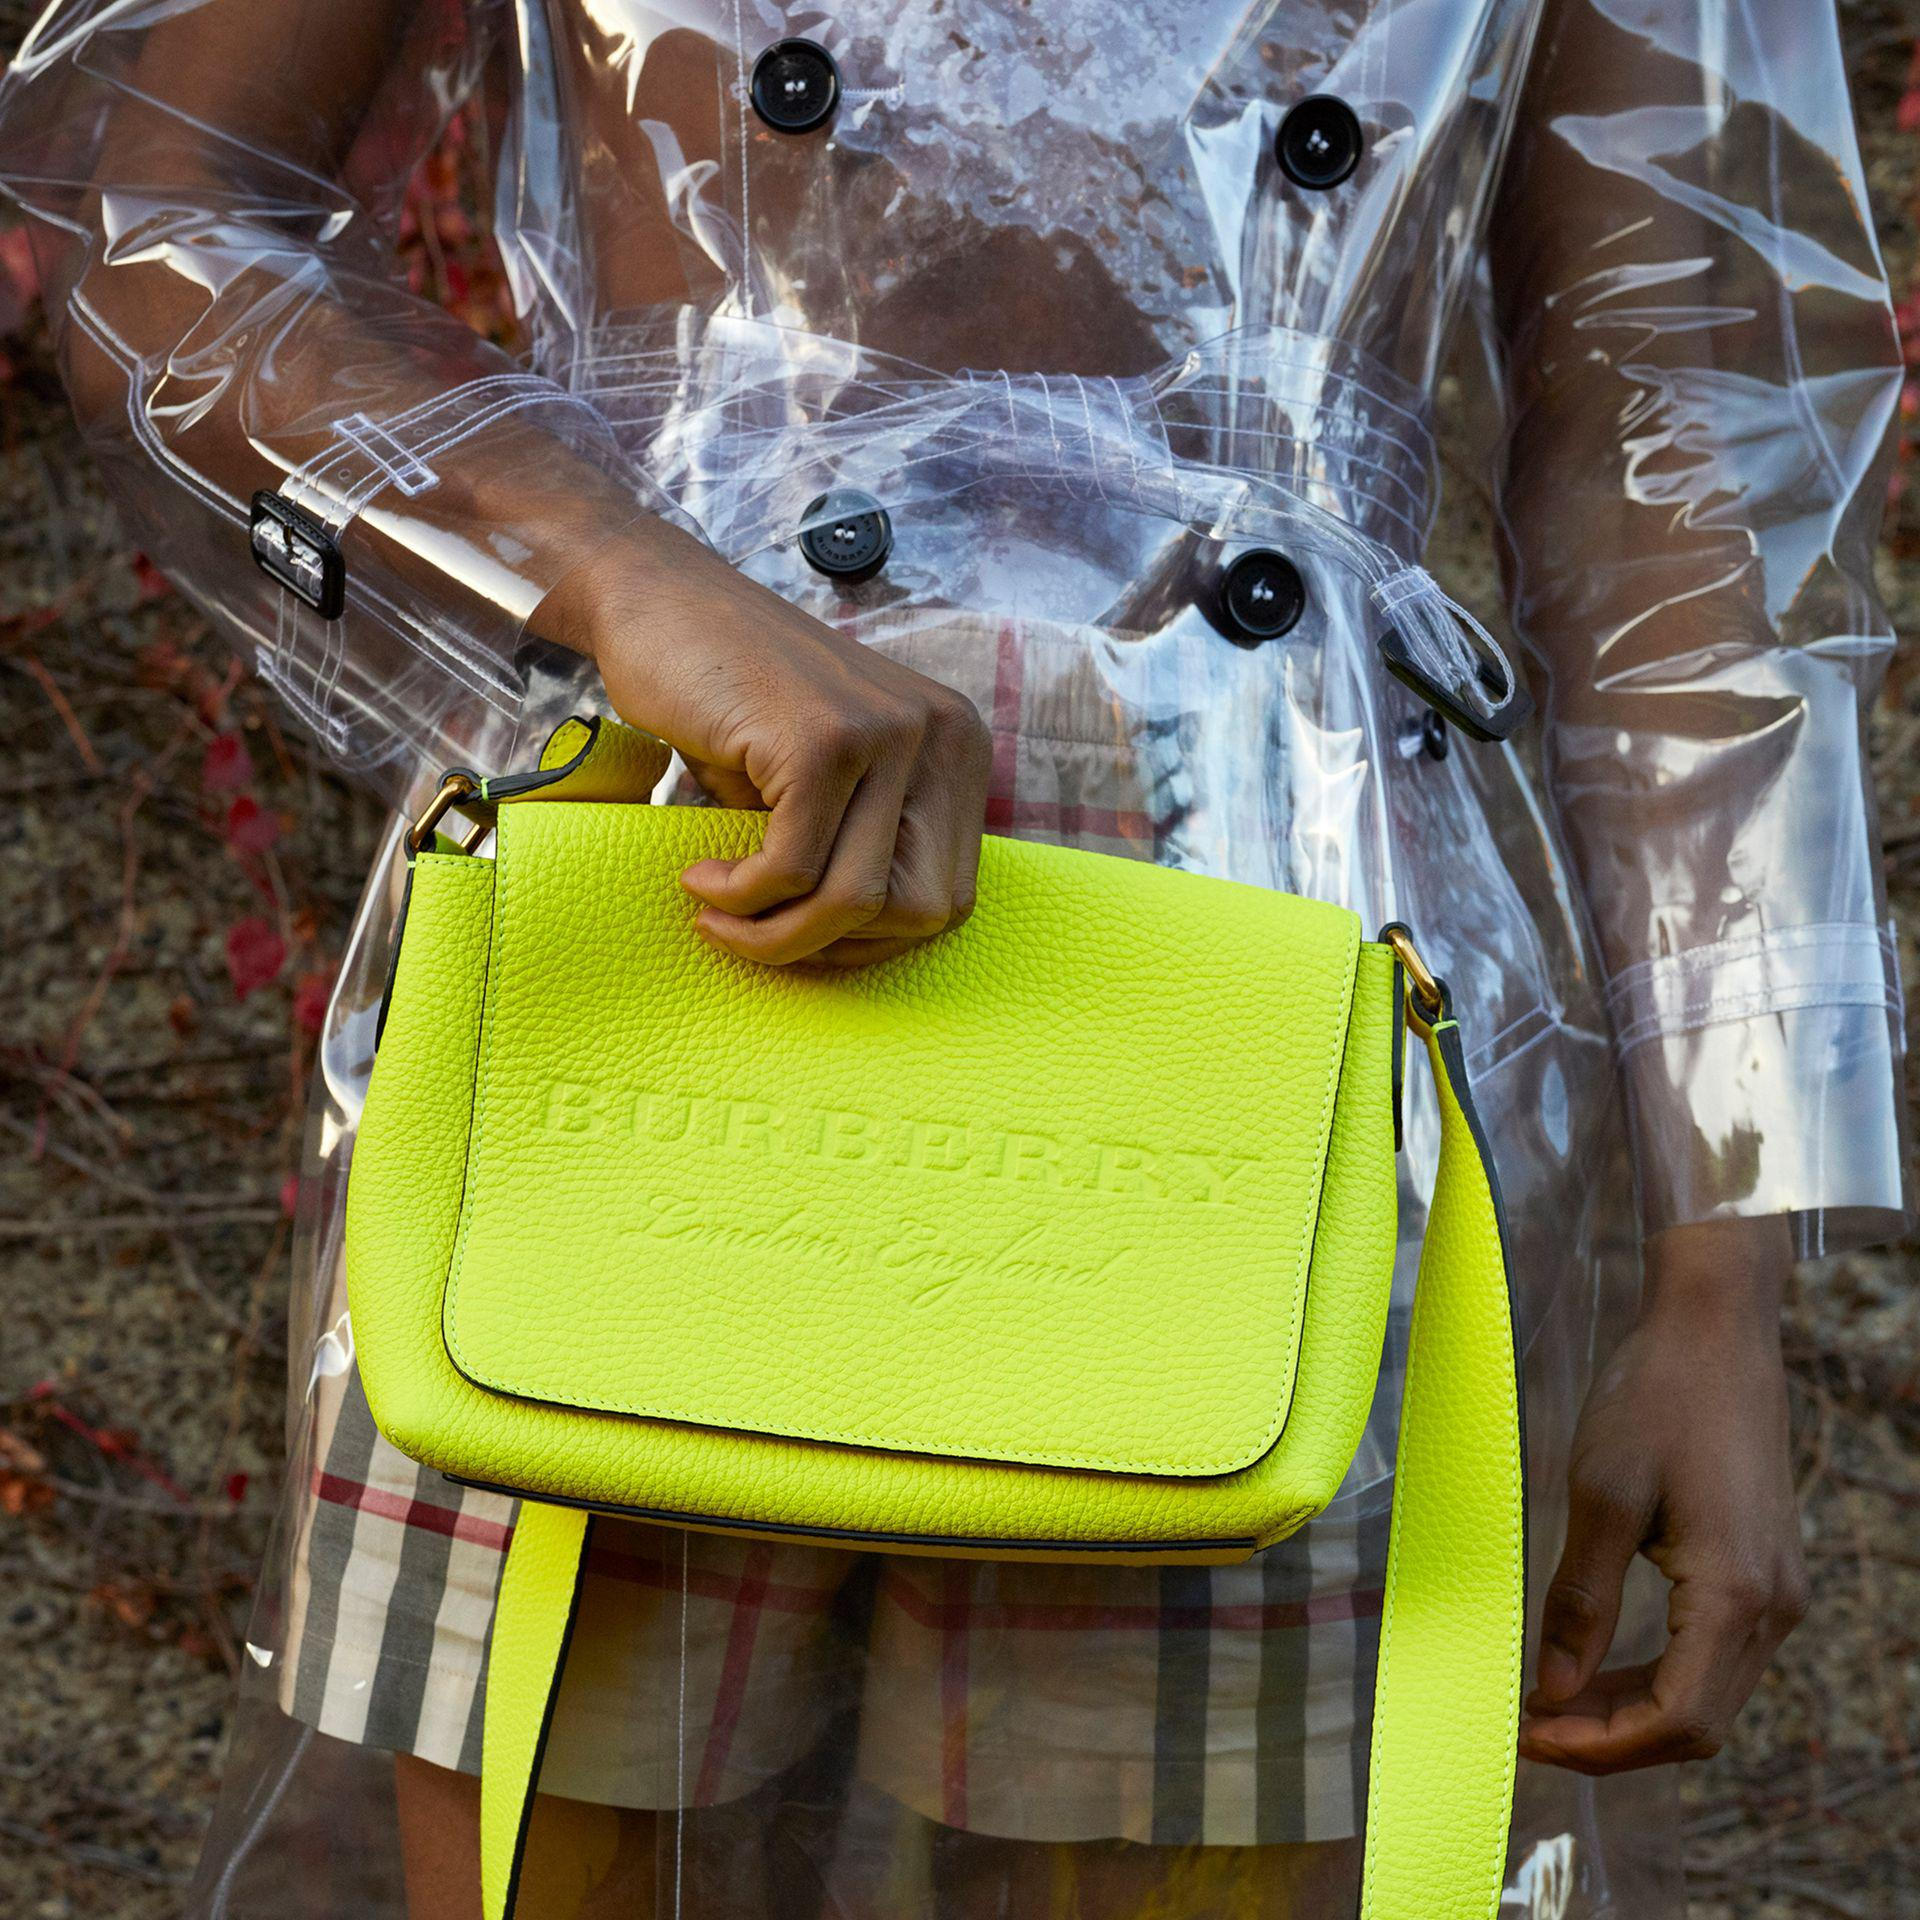 a1eb143e87ed Lyst - Burberry Small Embossed Neon Leather Messenger Bag in Yellow